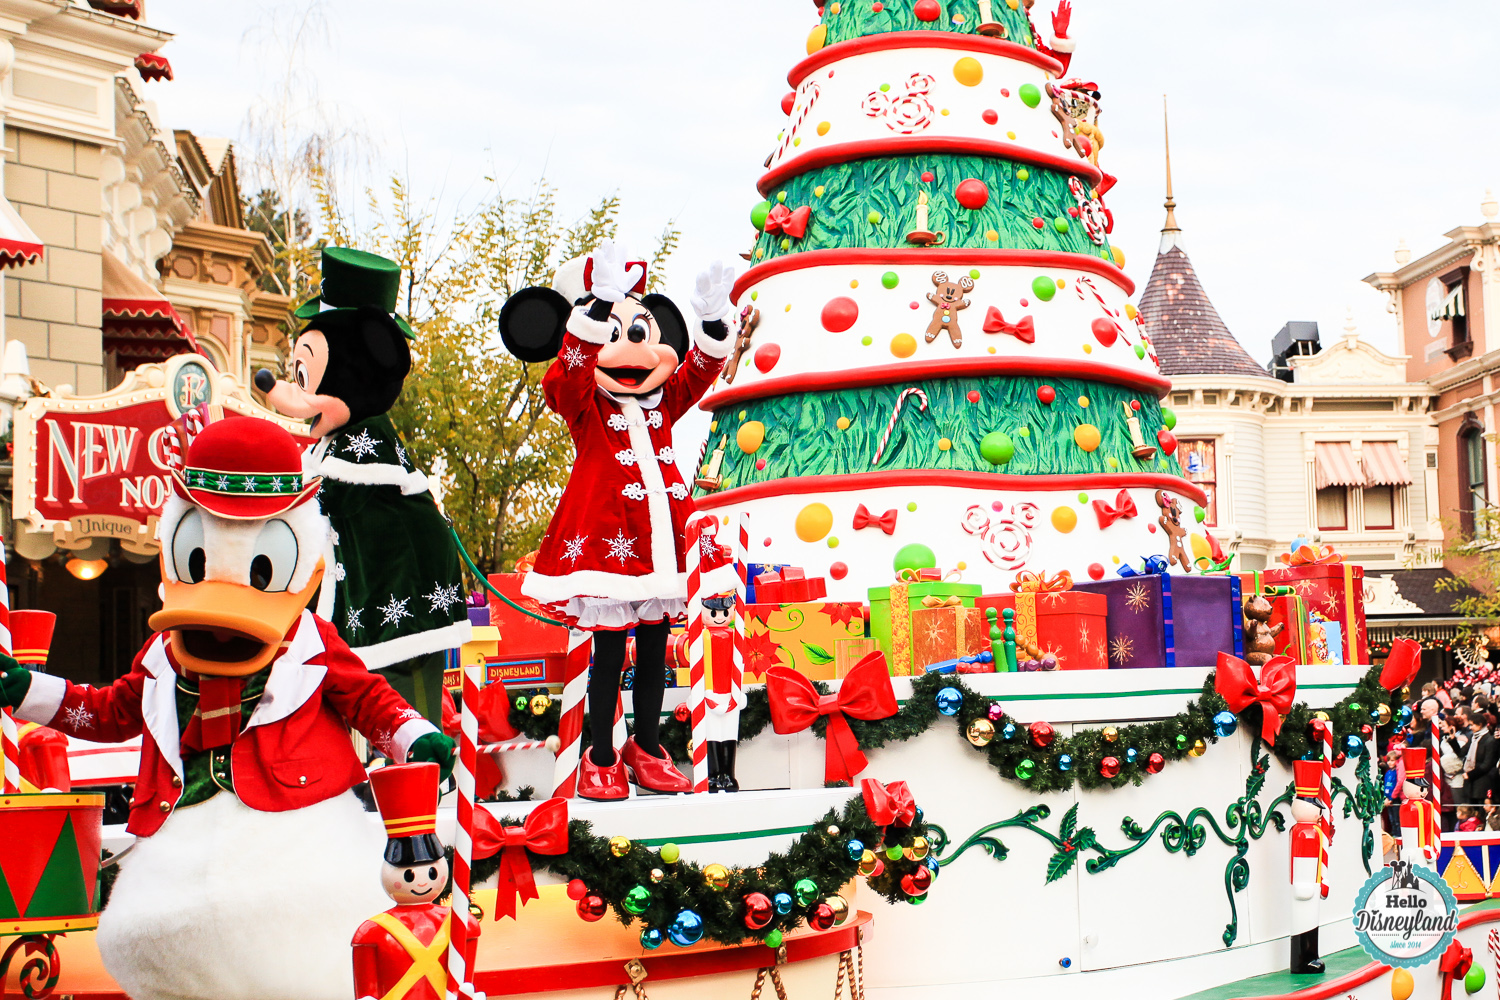 #B81613 Le Noël Enchanté 2015 De Disneyland Paris Hello  6653 Date Des Decorations De Noel A Paris 2015 1500x1000 px @ aertt.com